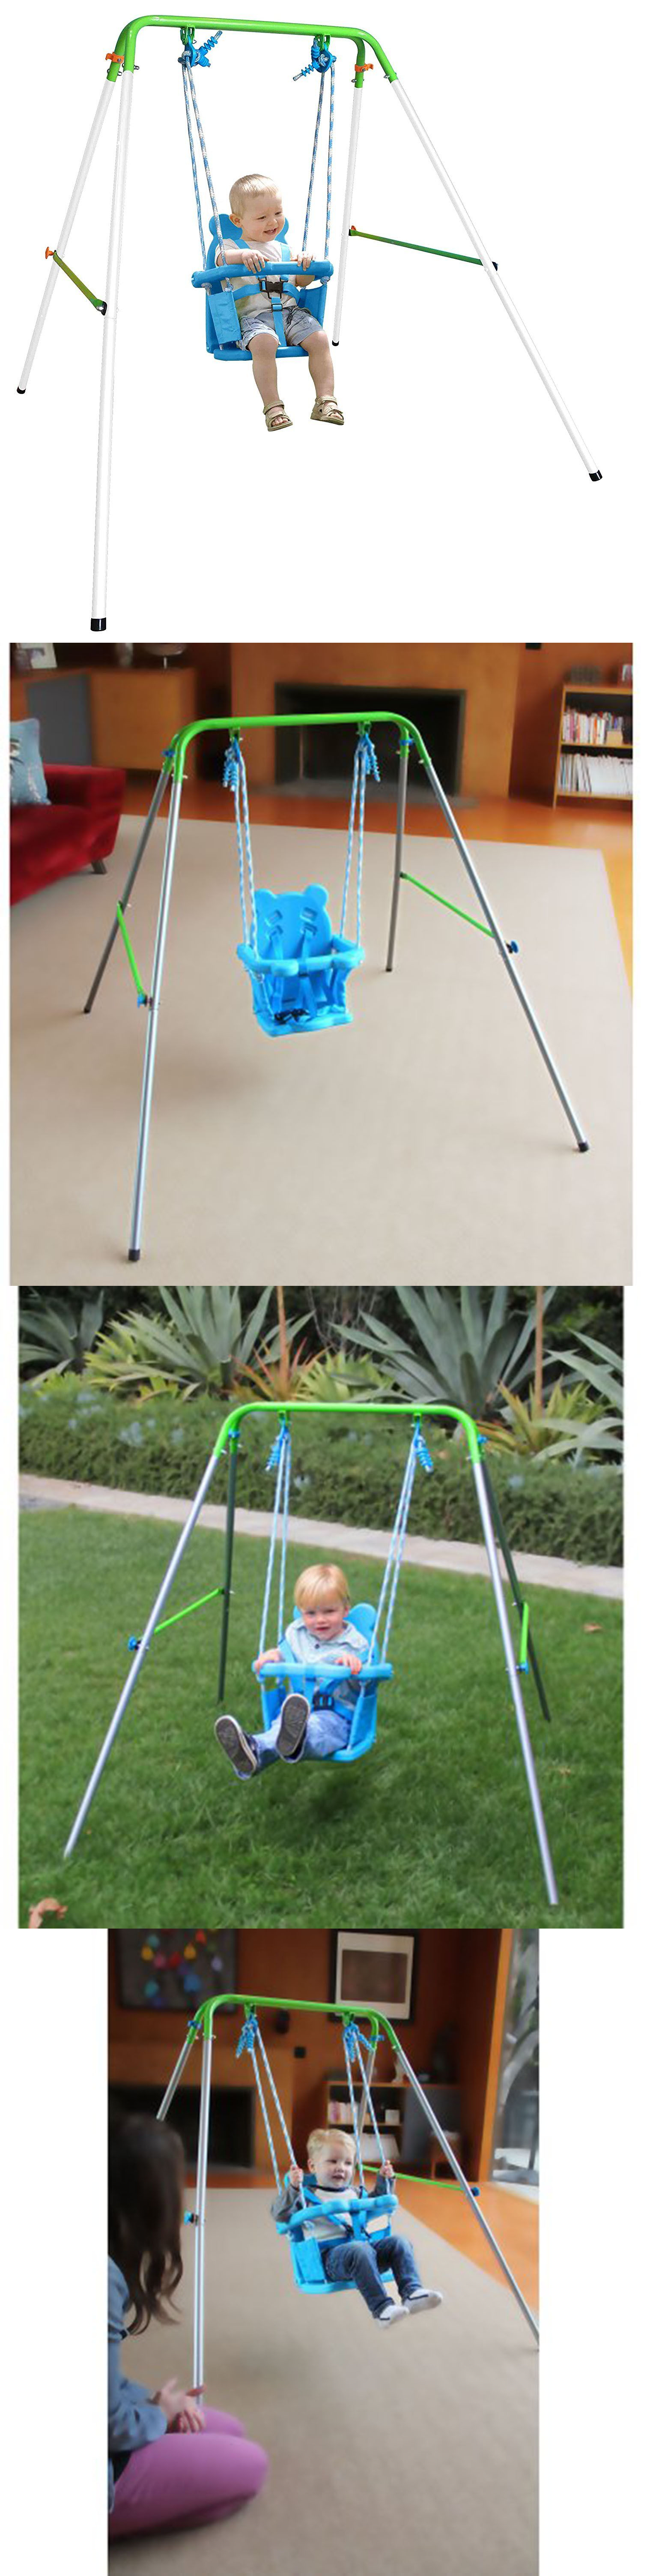 swings slides and gyms 16515 toddler kids baby swing set indoor